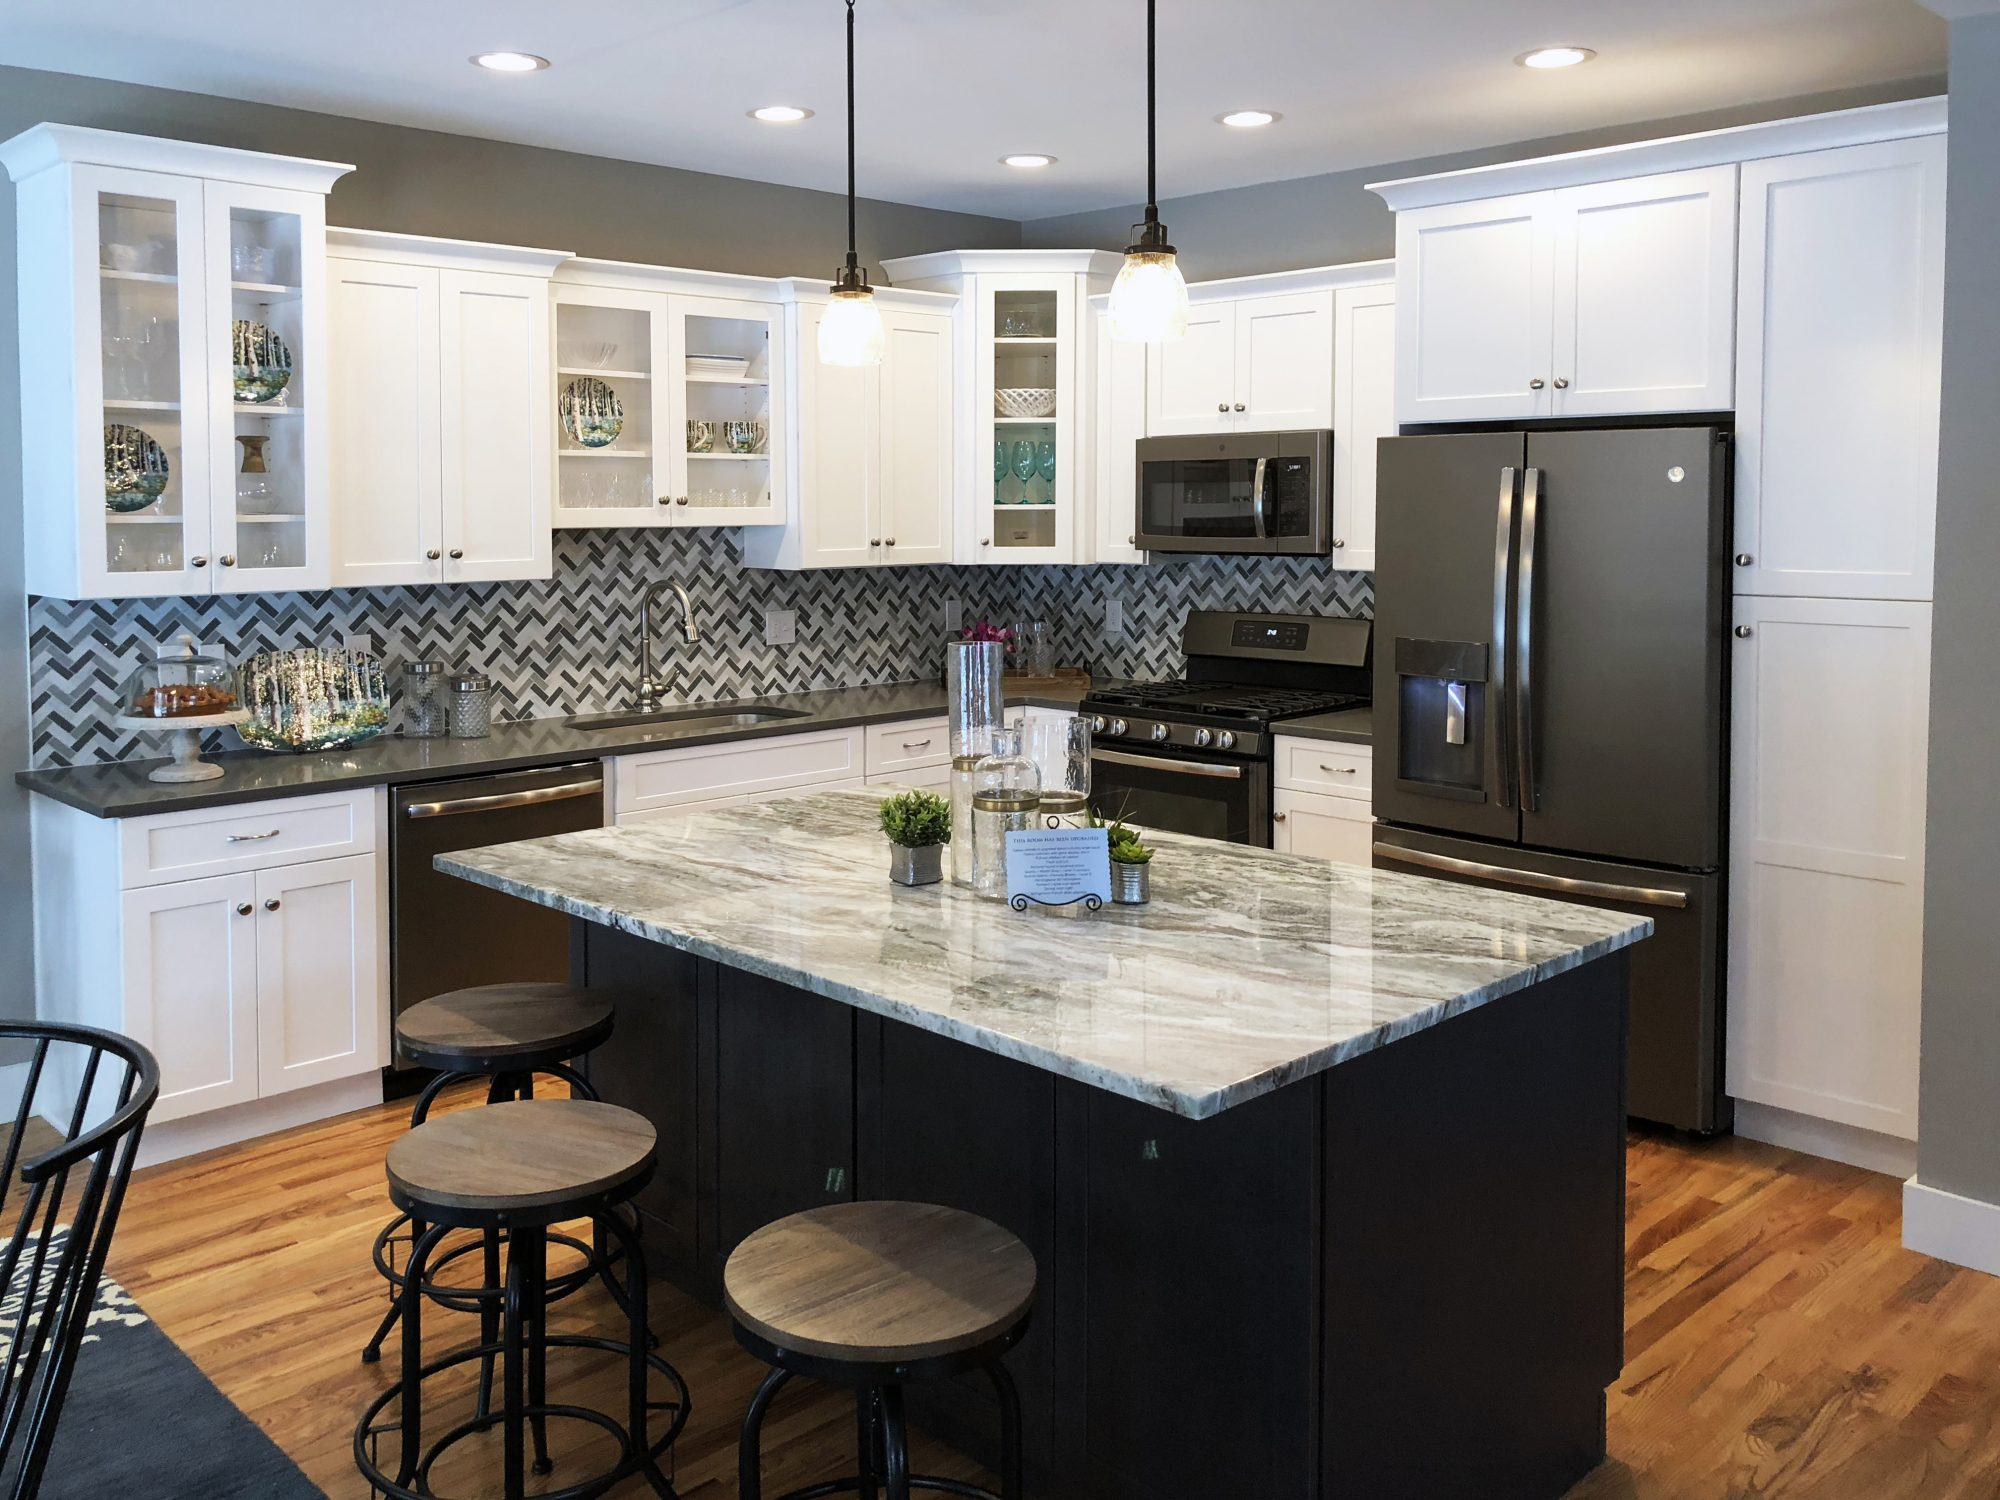 New kitchen at Copperbrook development in Granby, CT